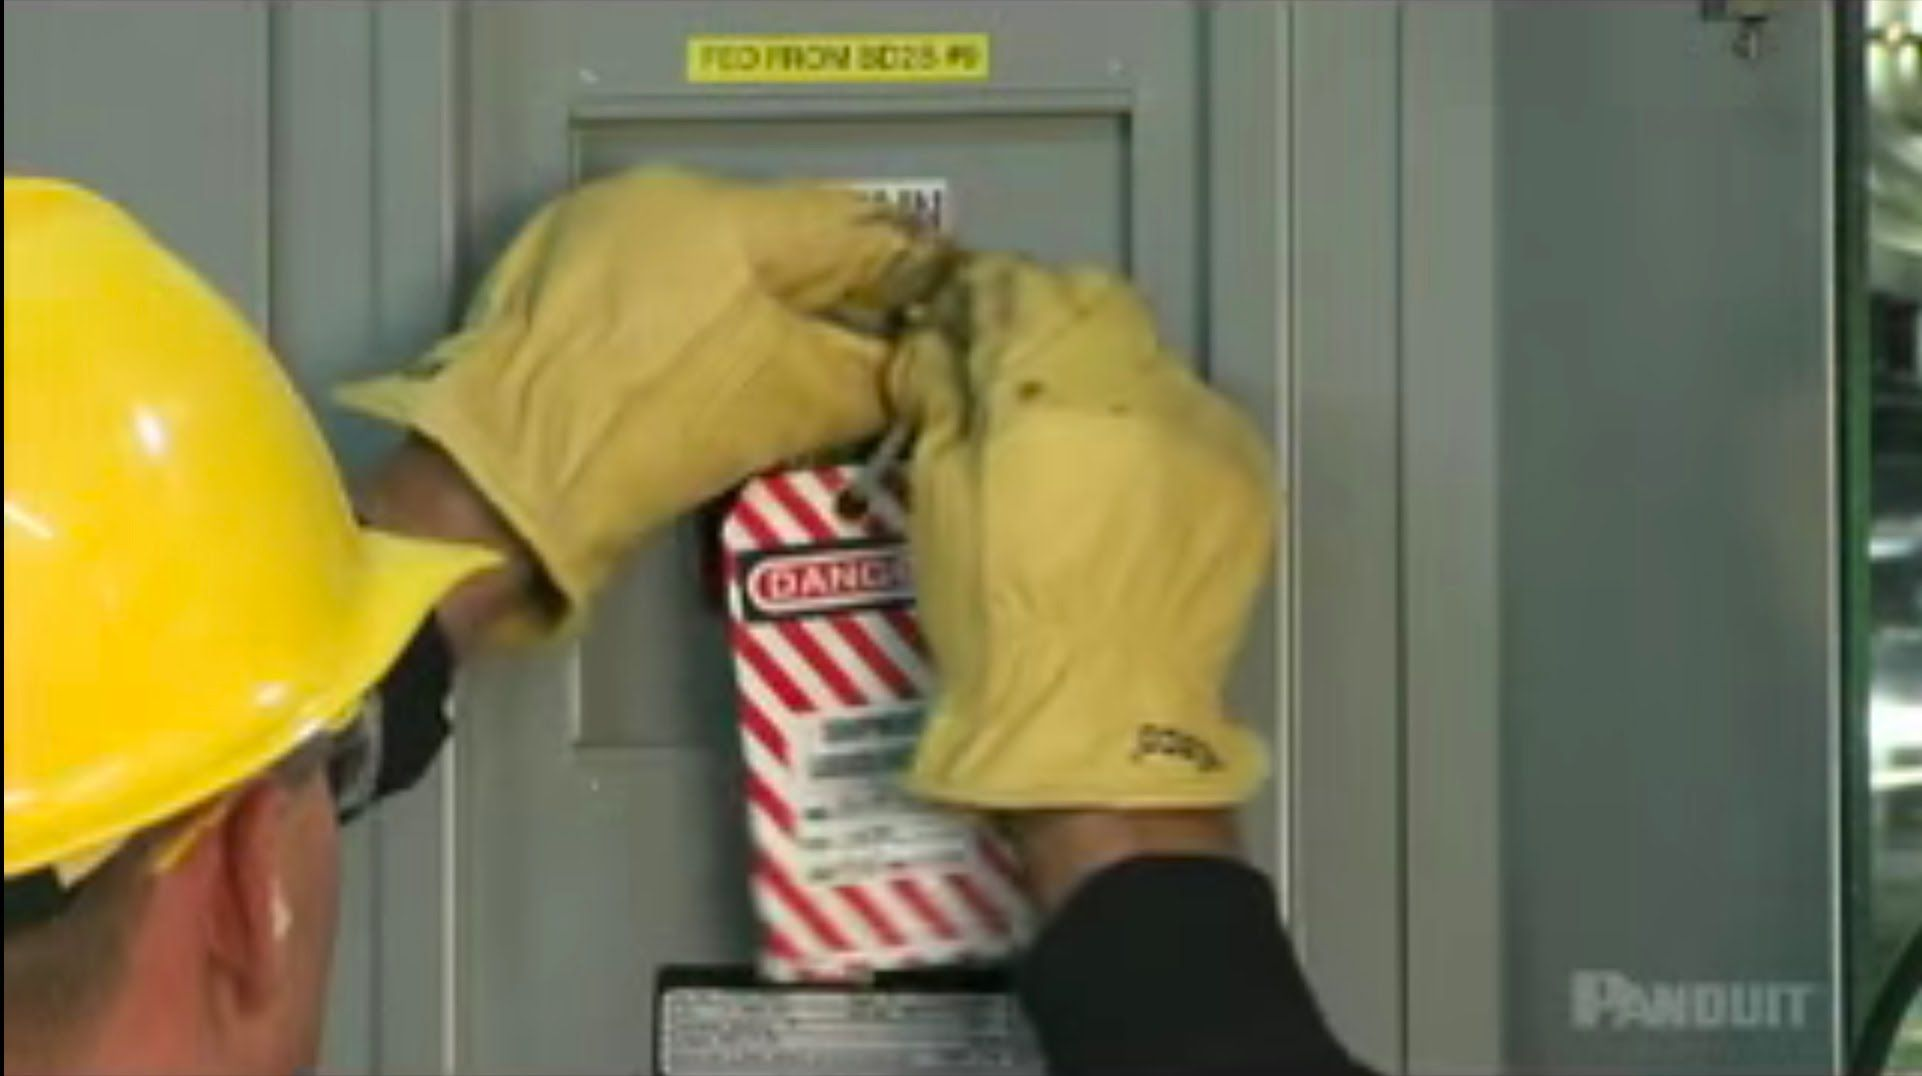 Lockout Tagout SafetyTraining Video (With images) Safety